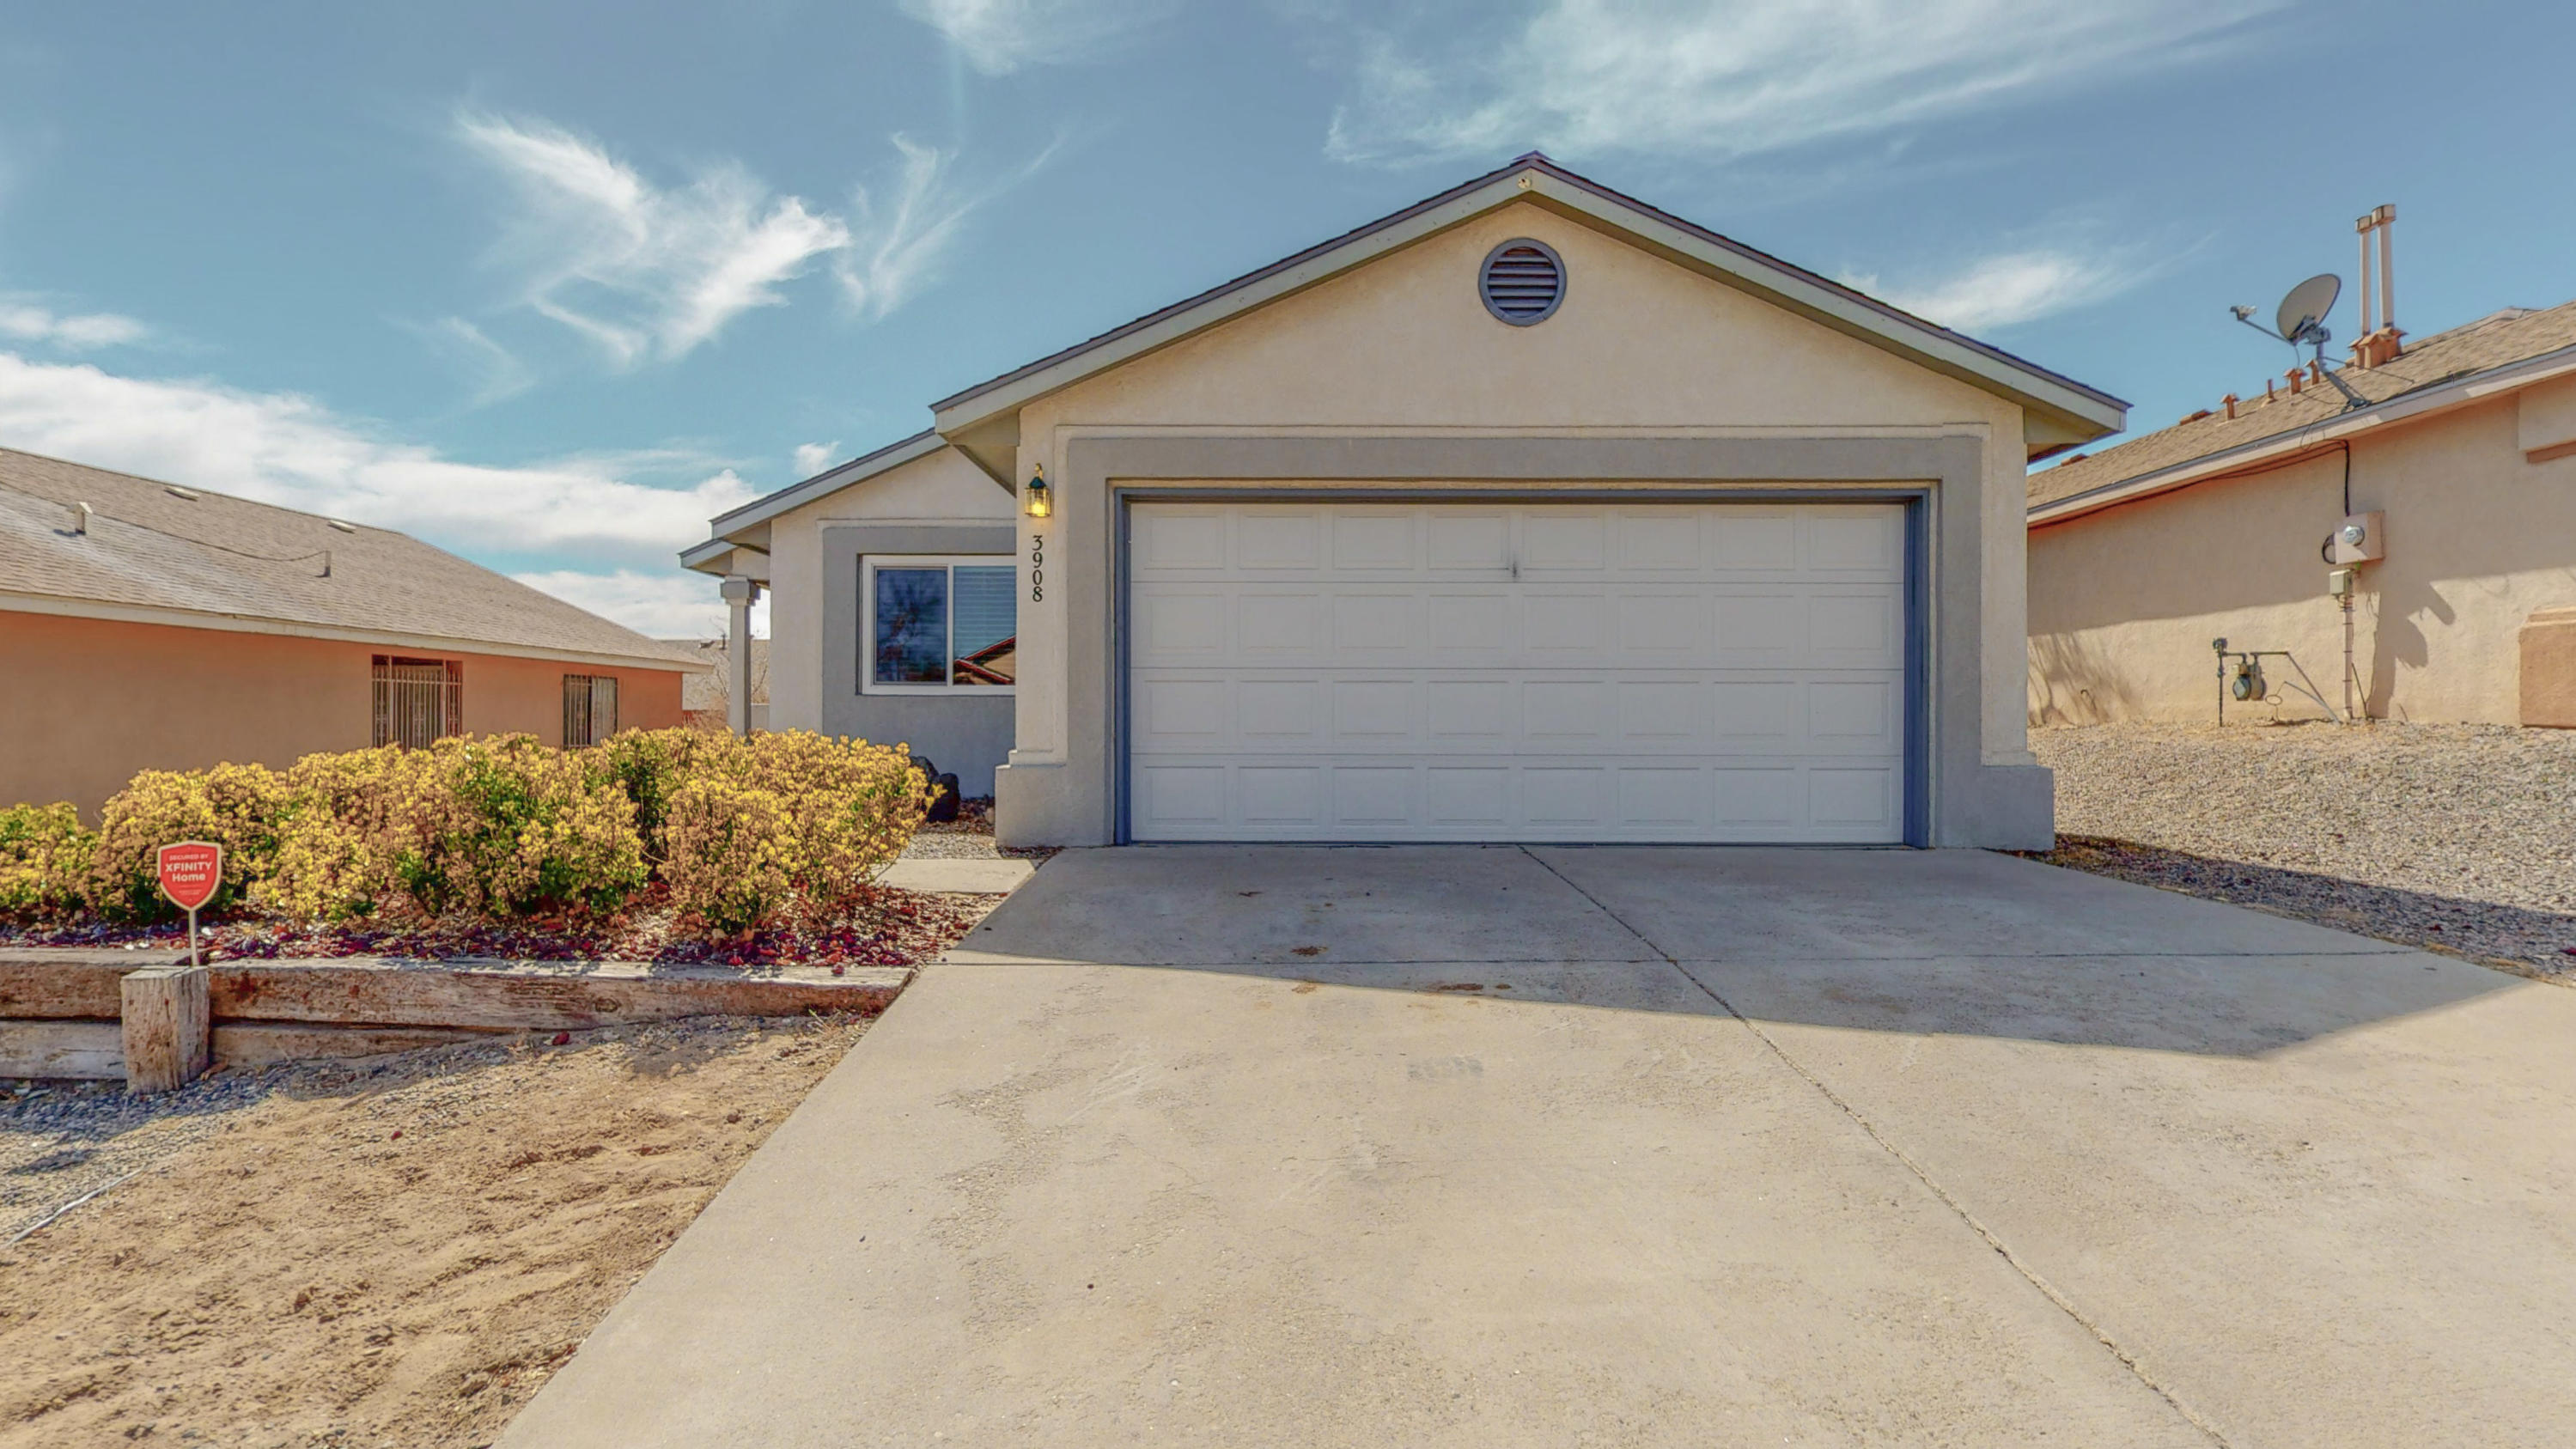 Location, location, location! Minutes away from the Cottonwood Mall, easy access to Paseo Del Norte, and close to grocery stores, dining and the theater. This home has been well taken care of. The windows were upgraded in July of 2018. The roof was redone in December of 2017.   Carpet was installed in November of 2020. This home has a large family room with plenty of space to entertain. The eat in kitchen has beautiful appliances that are about two years old. The covered patio is right off of the family room that provides a space for BBQ's or a place for a quiet evening with your favorite beverage. A large master suite with a walk in closet and a beautifully remodeled shower. Two more bedrooms with a second bath to complete this perfect home! The square feet will be verified by the 24th.